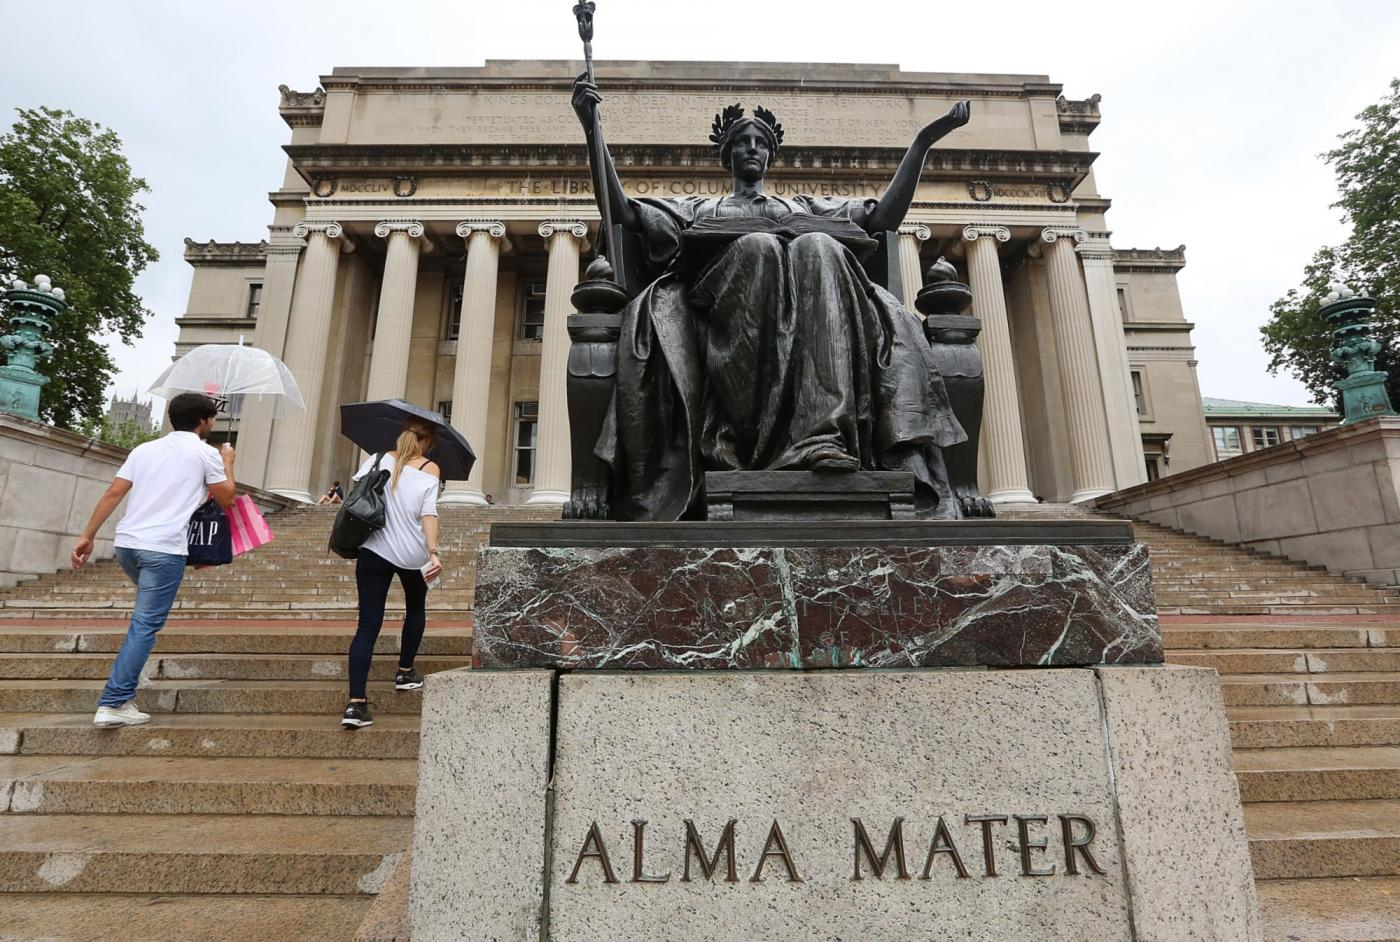 Students accuse Columbia University of 'importing racism' from Israel